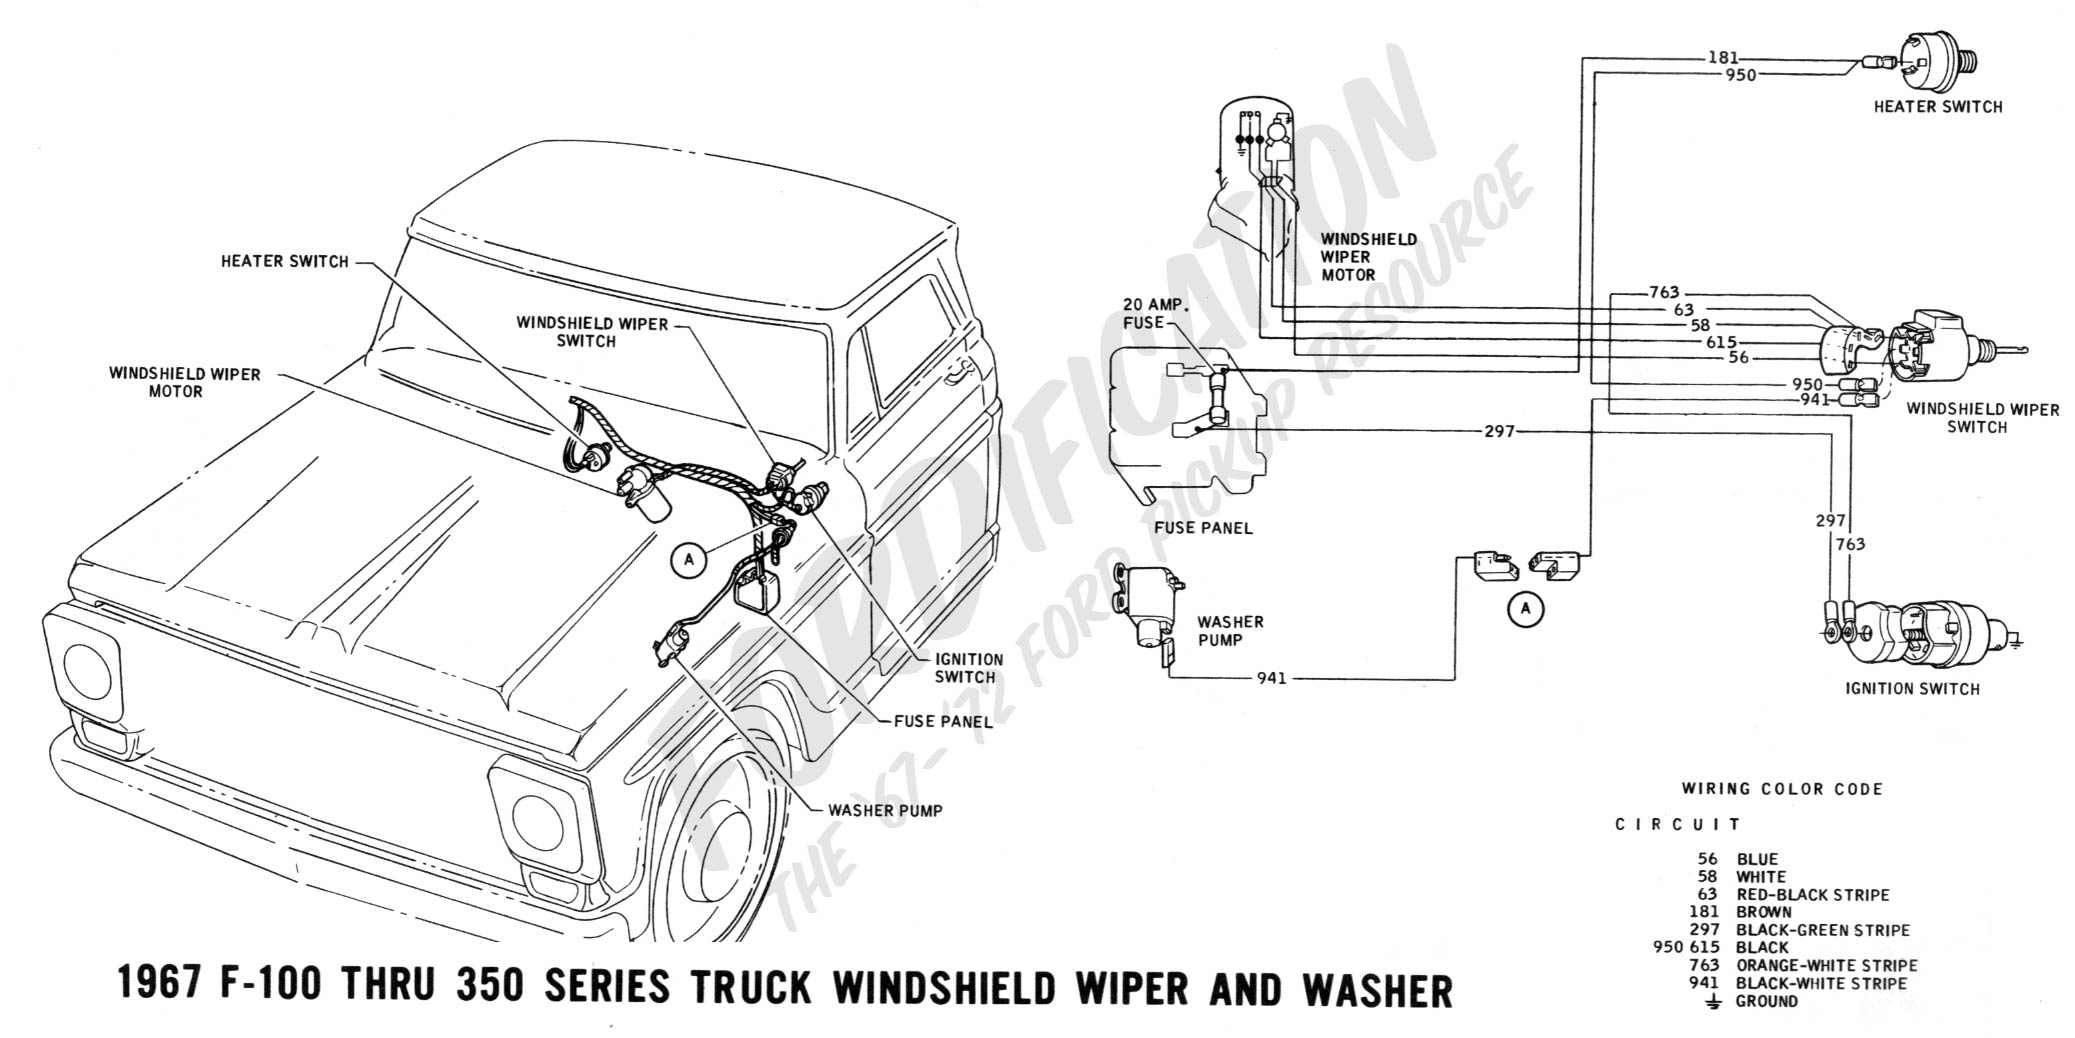 Phenomenal 1966 Ford F100 Wiring Schematic Wiring Diagram Tutorial Wiring Cloud Loplapiotaidewilluminateatxorg